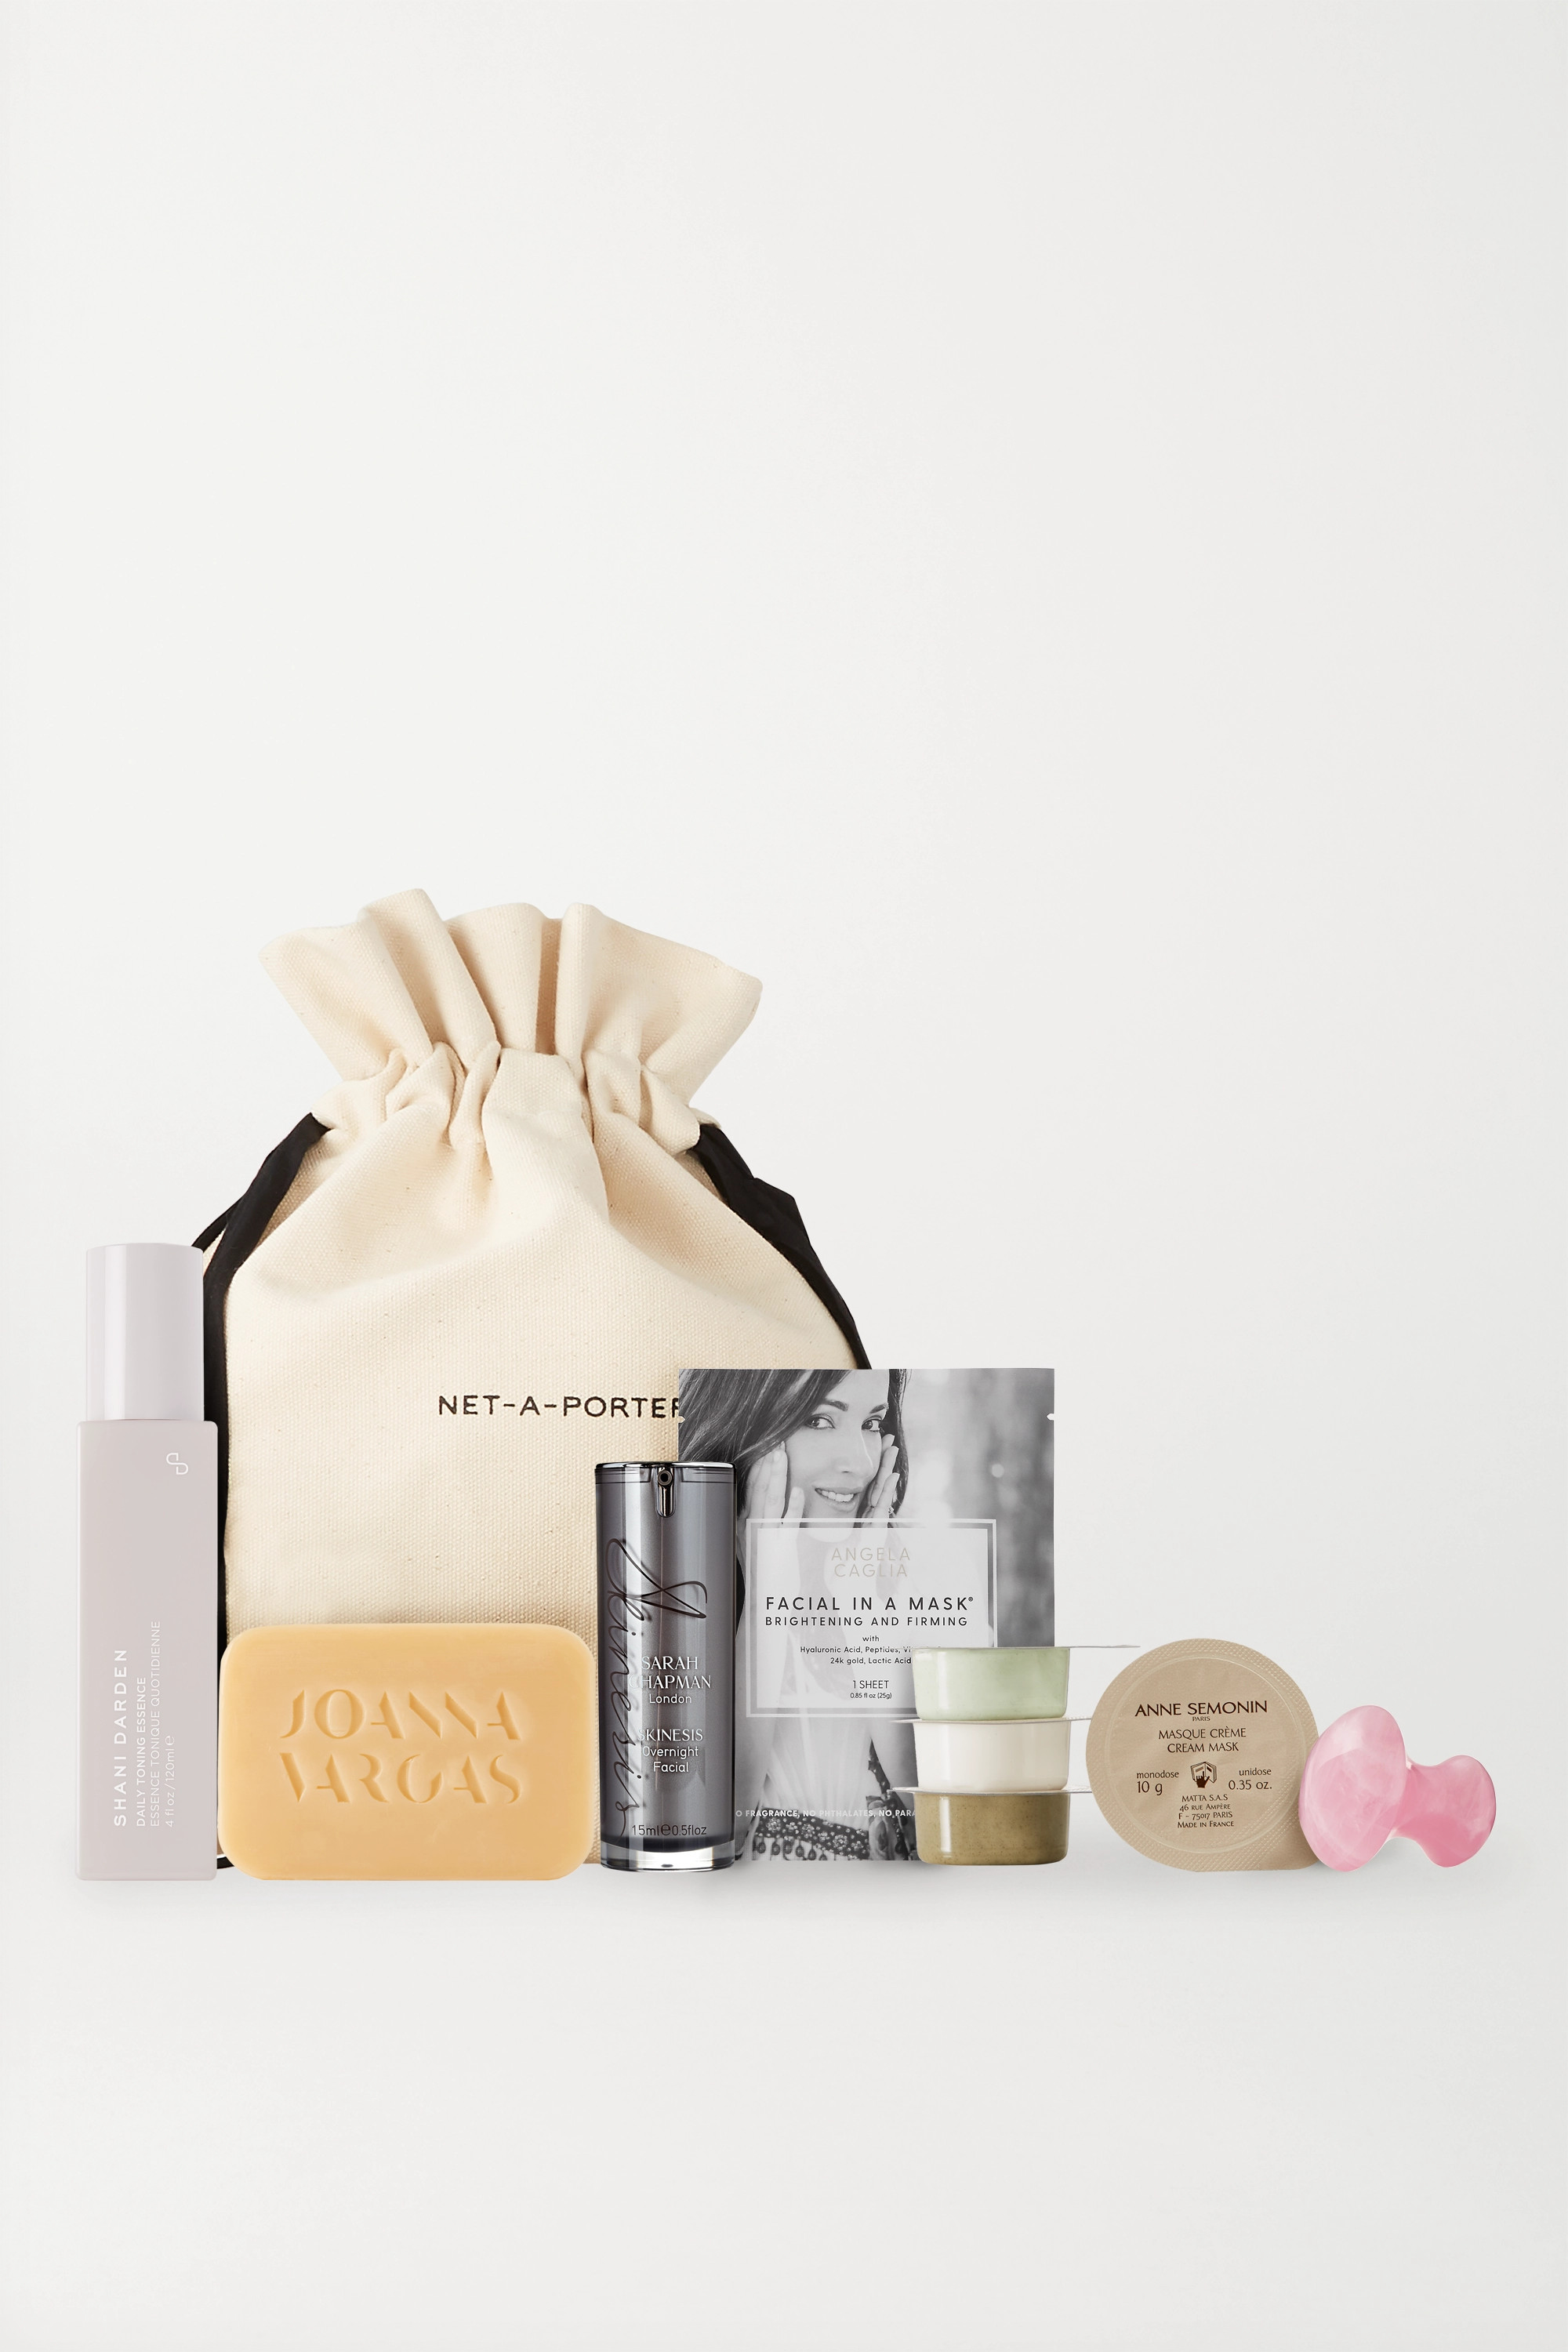 NET-A-PORTER The At-Home Facialist Kit – Hautpflegeset